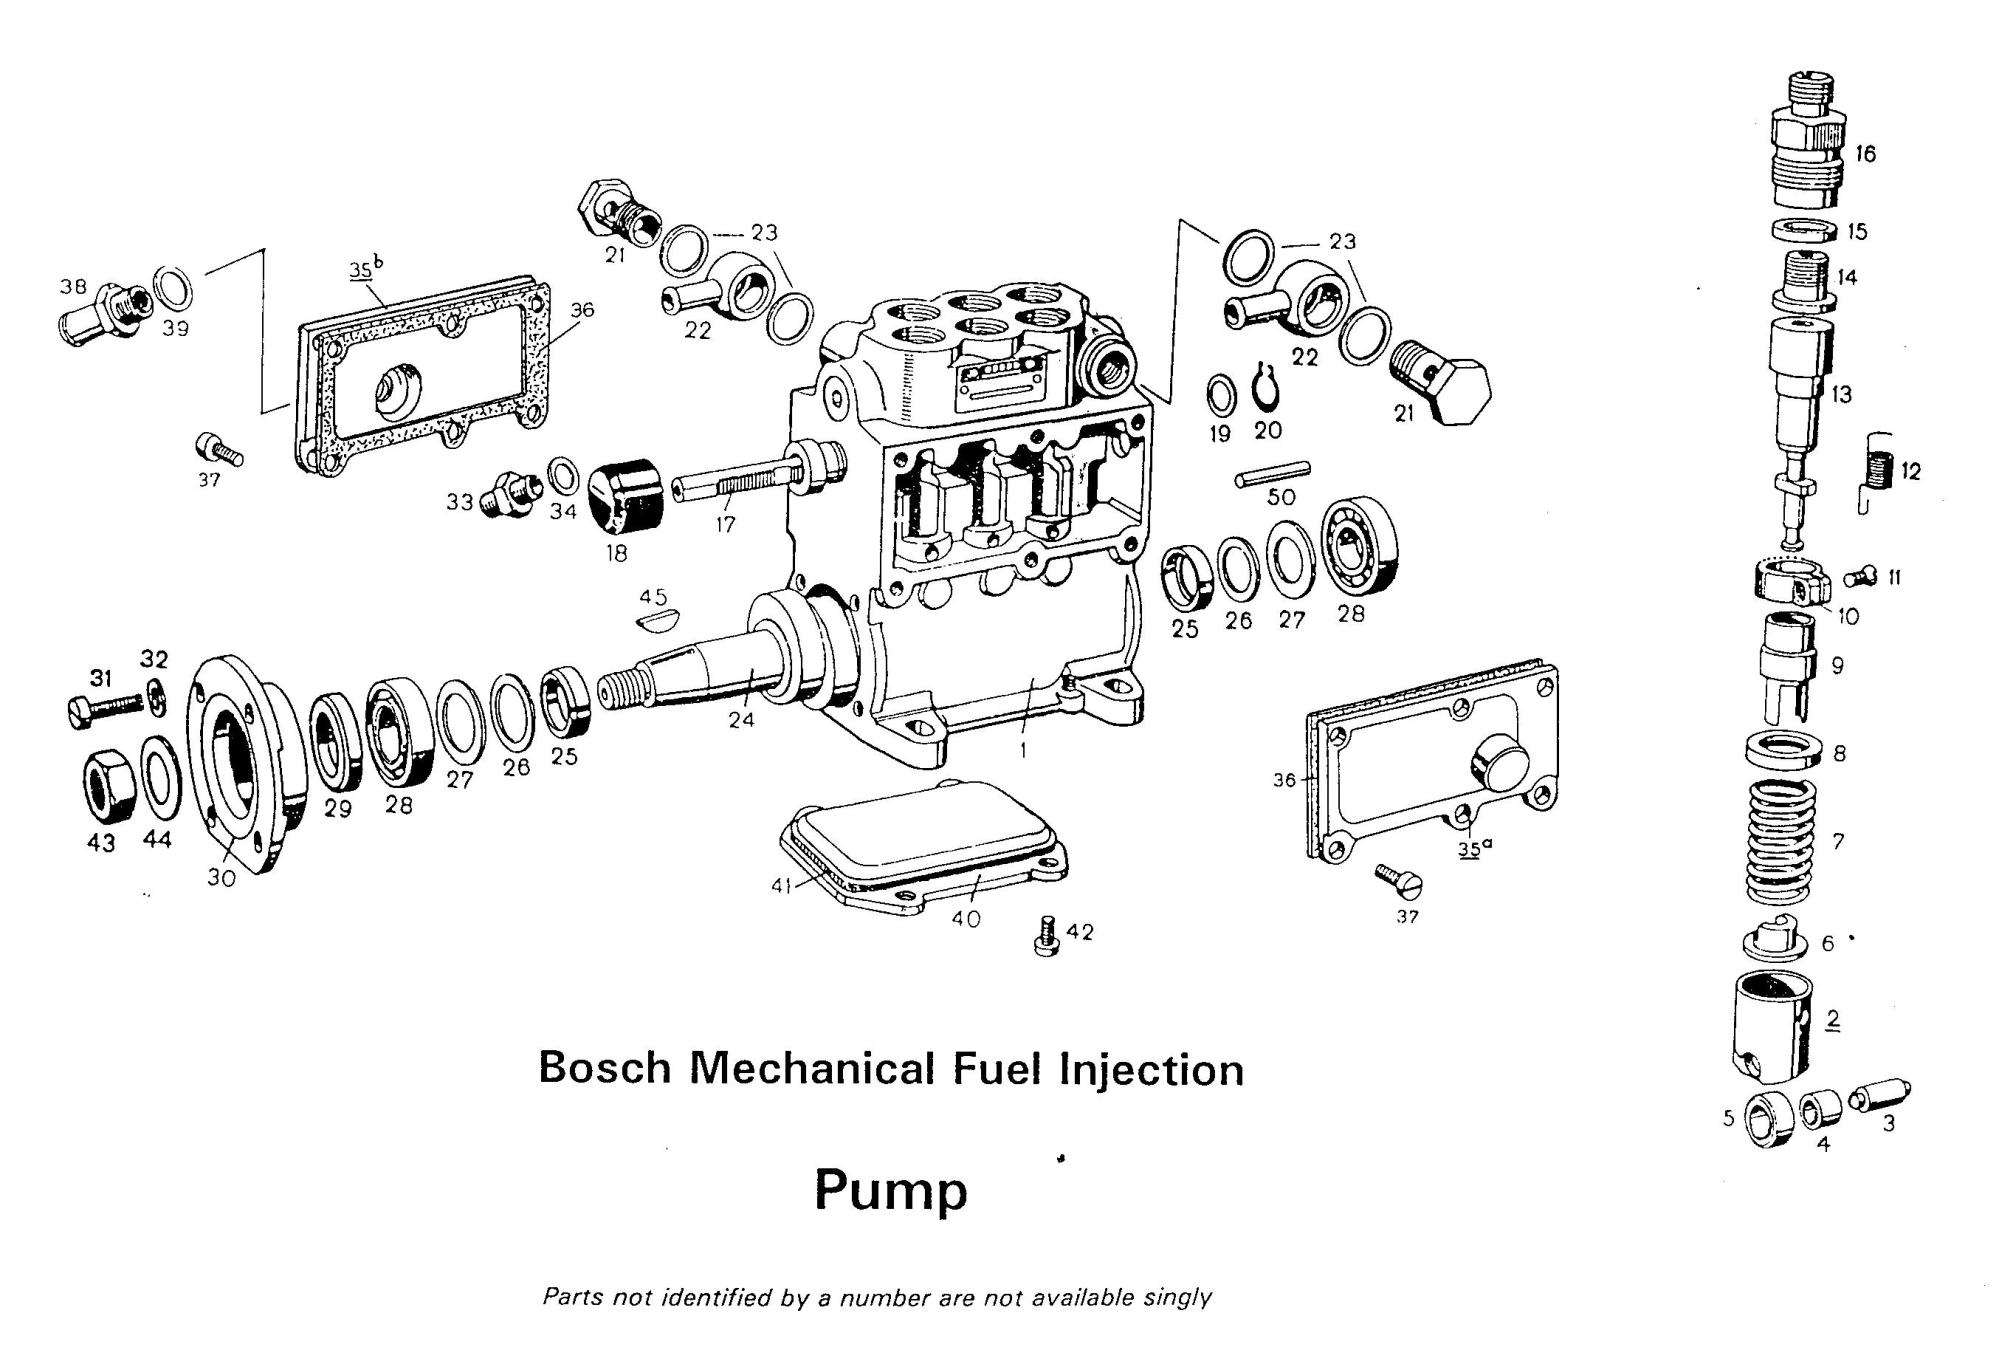 hight resolution of bosch mechanical fuel injection pump assembly section